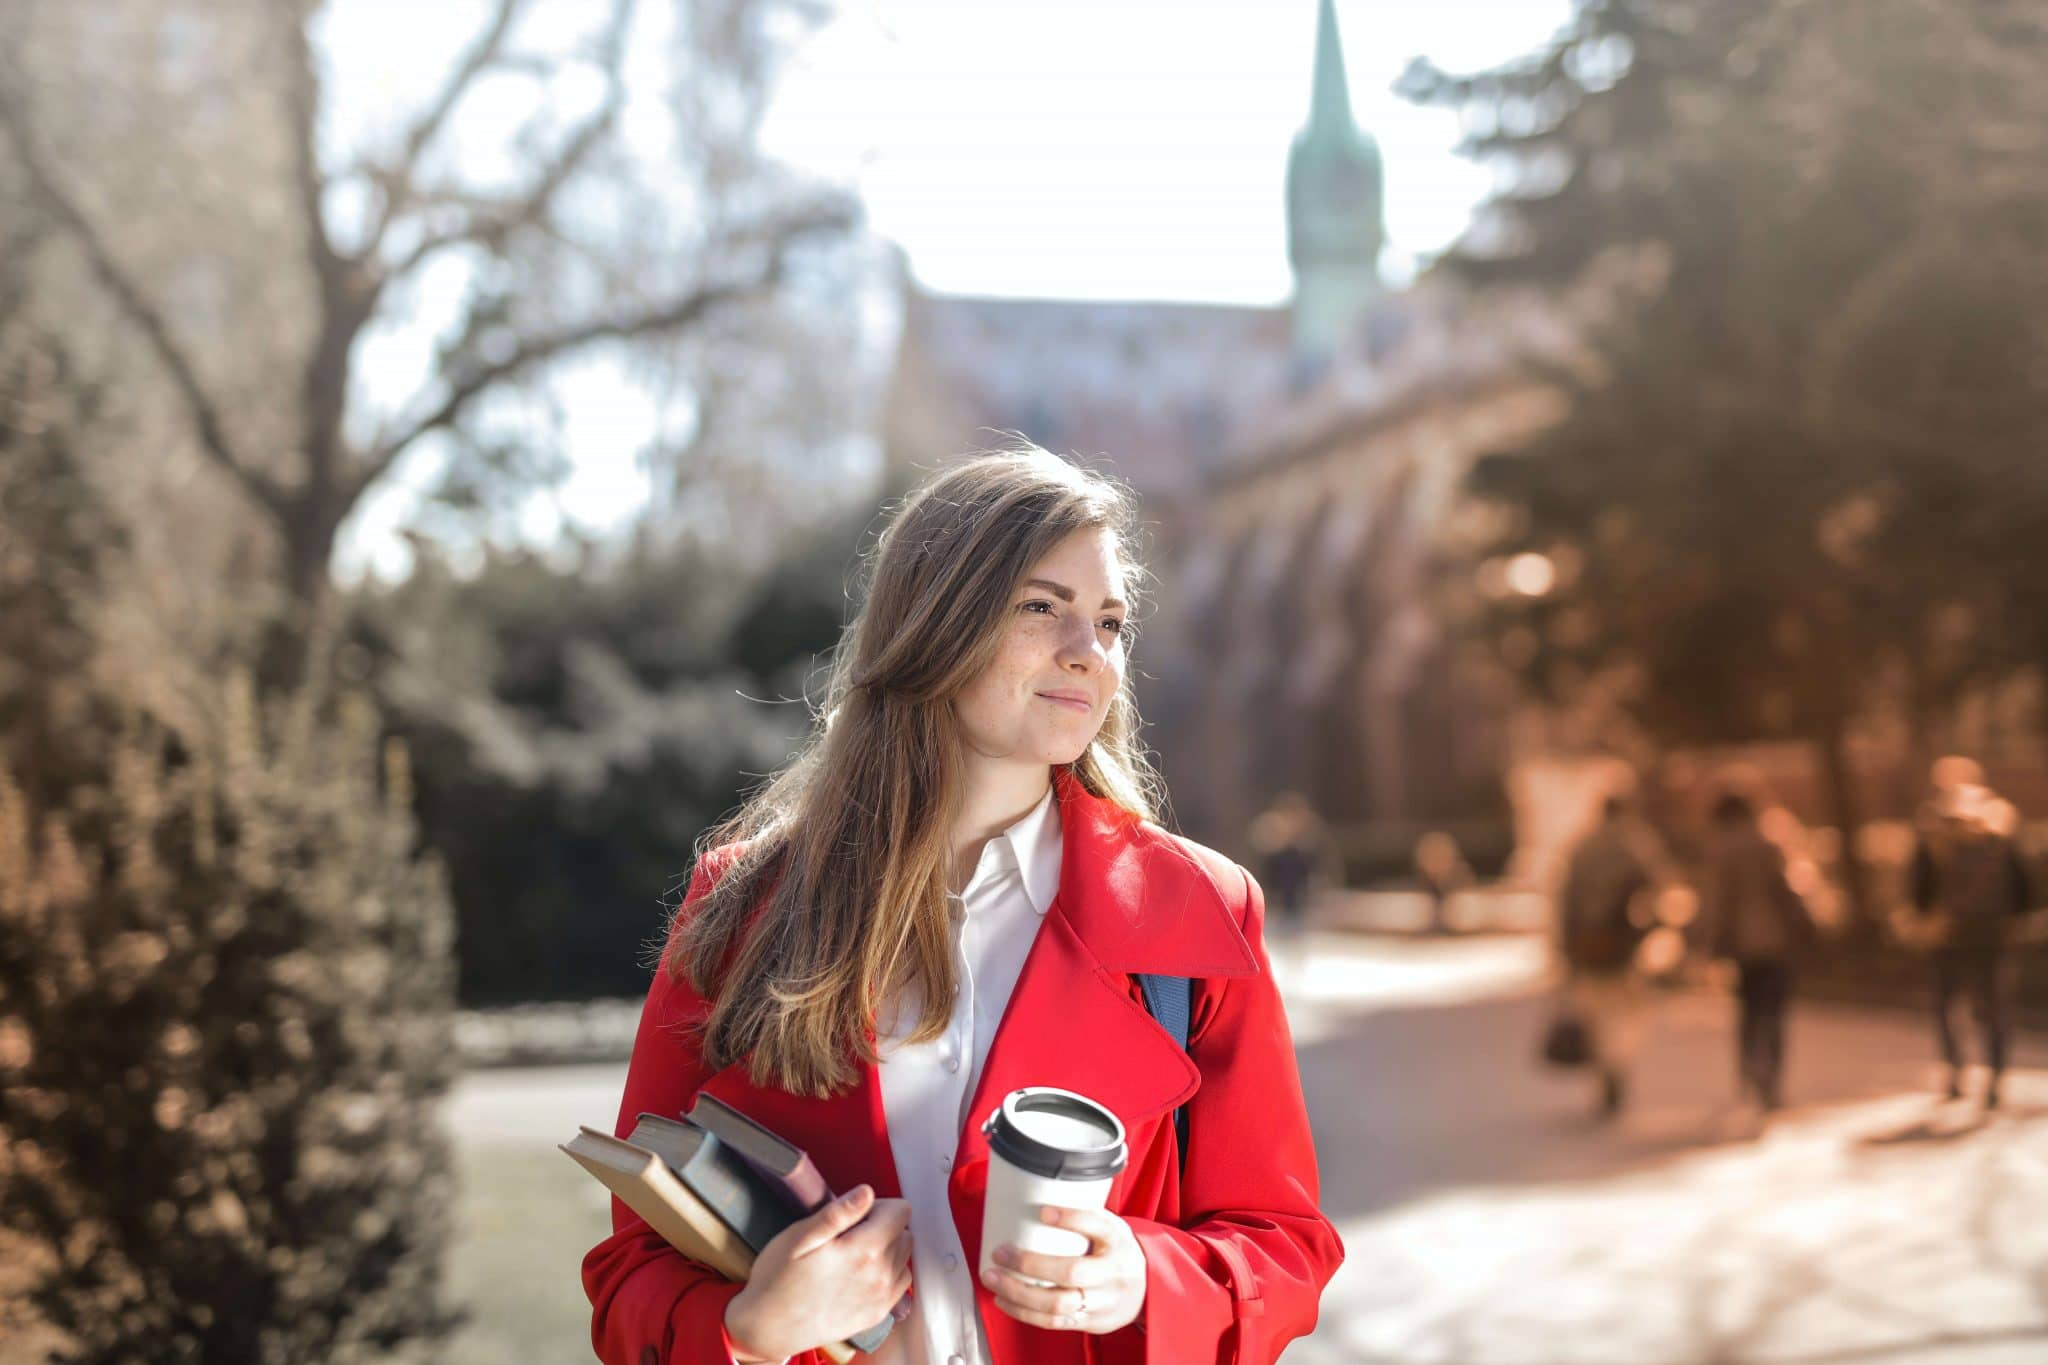 A female college student holding a coffee and some textbooks